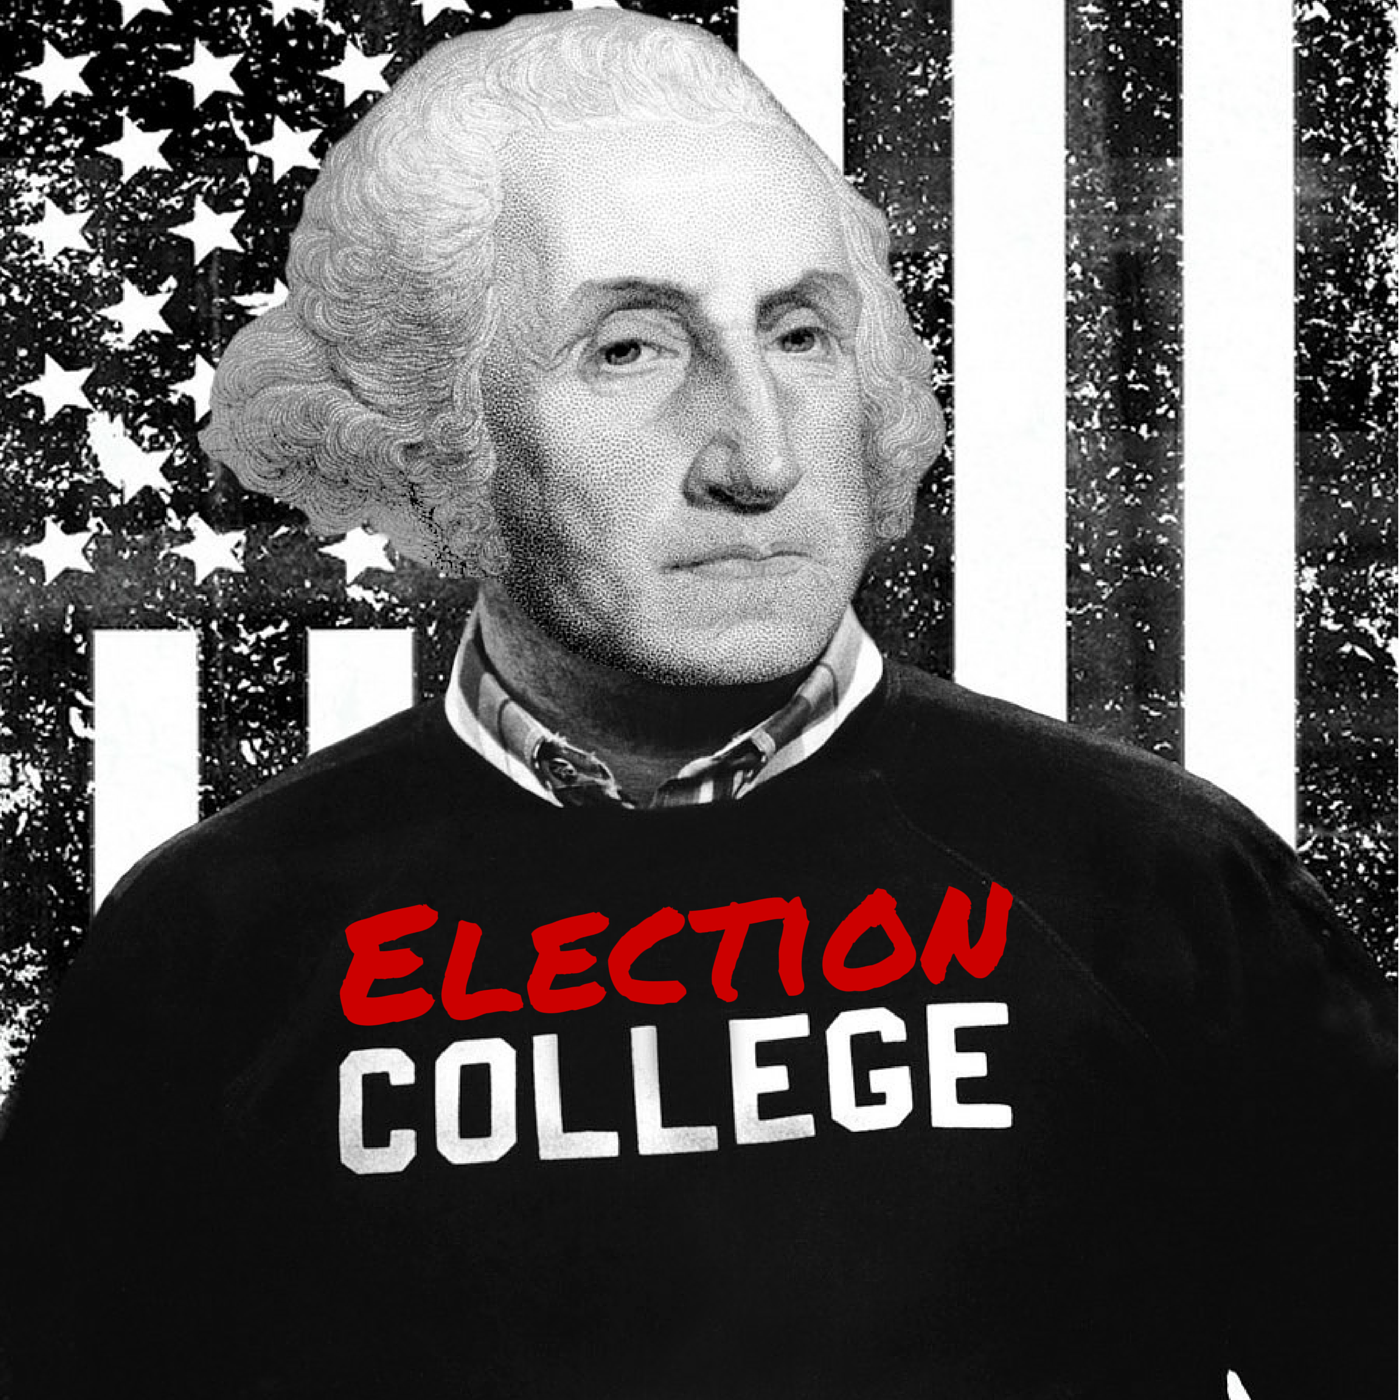 Elbridge Gerry - Part 2 | Episode #199 | Election College: United States Presidential Election History